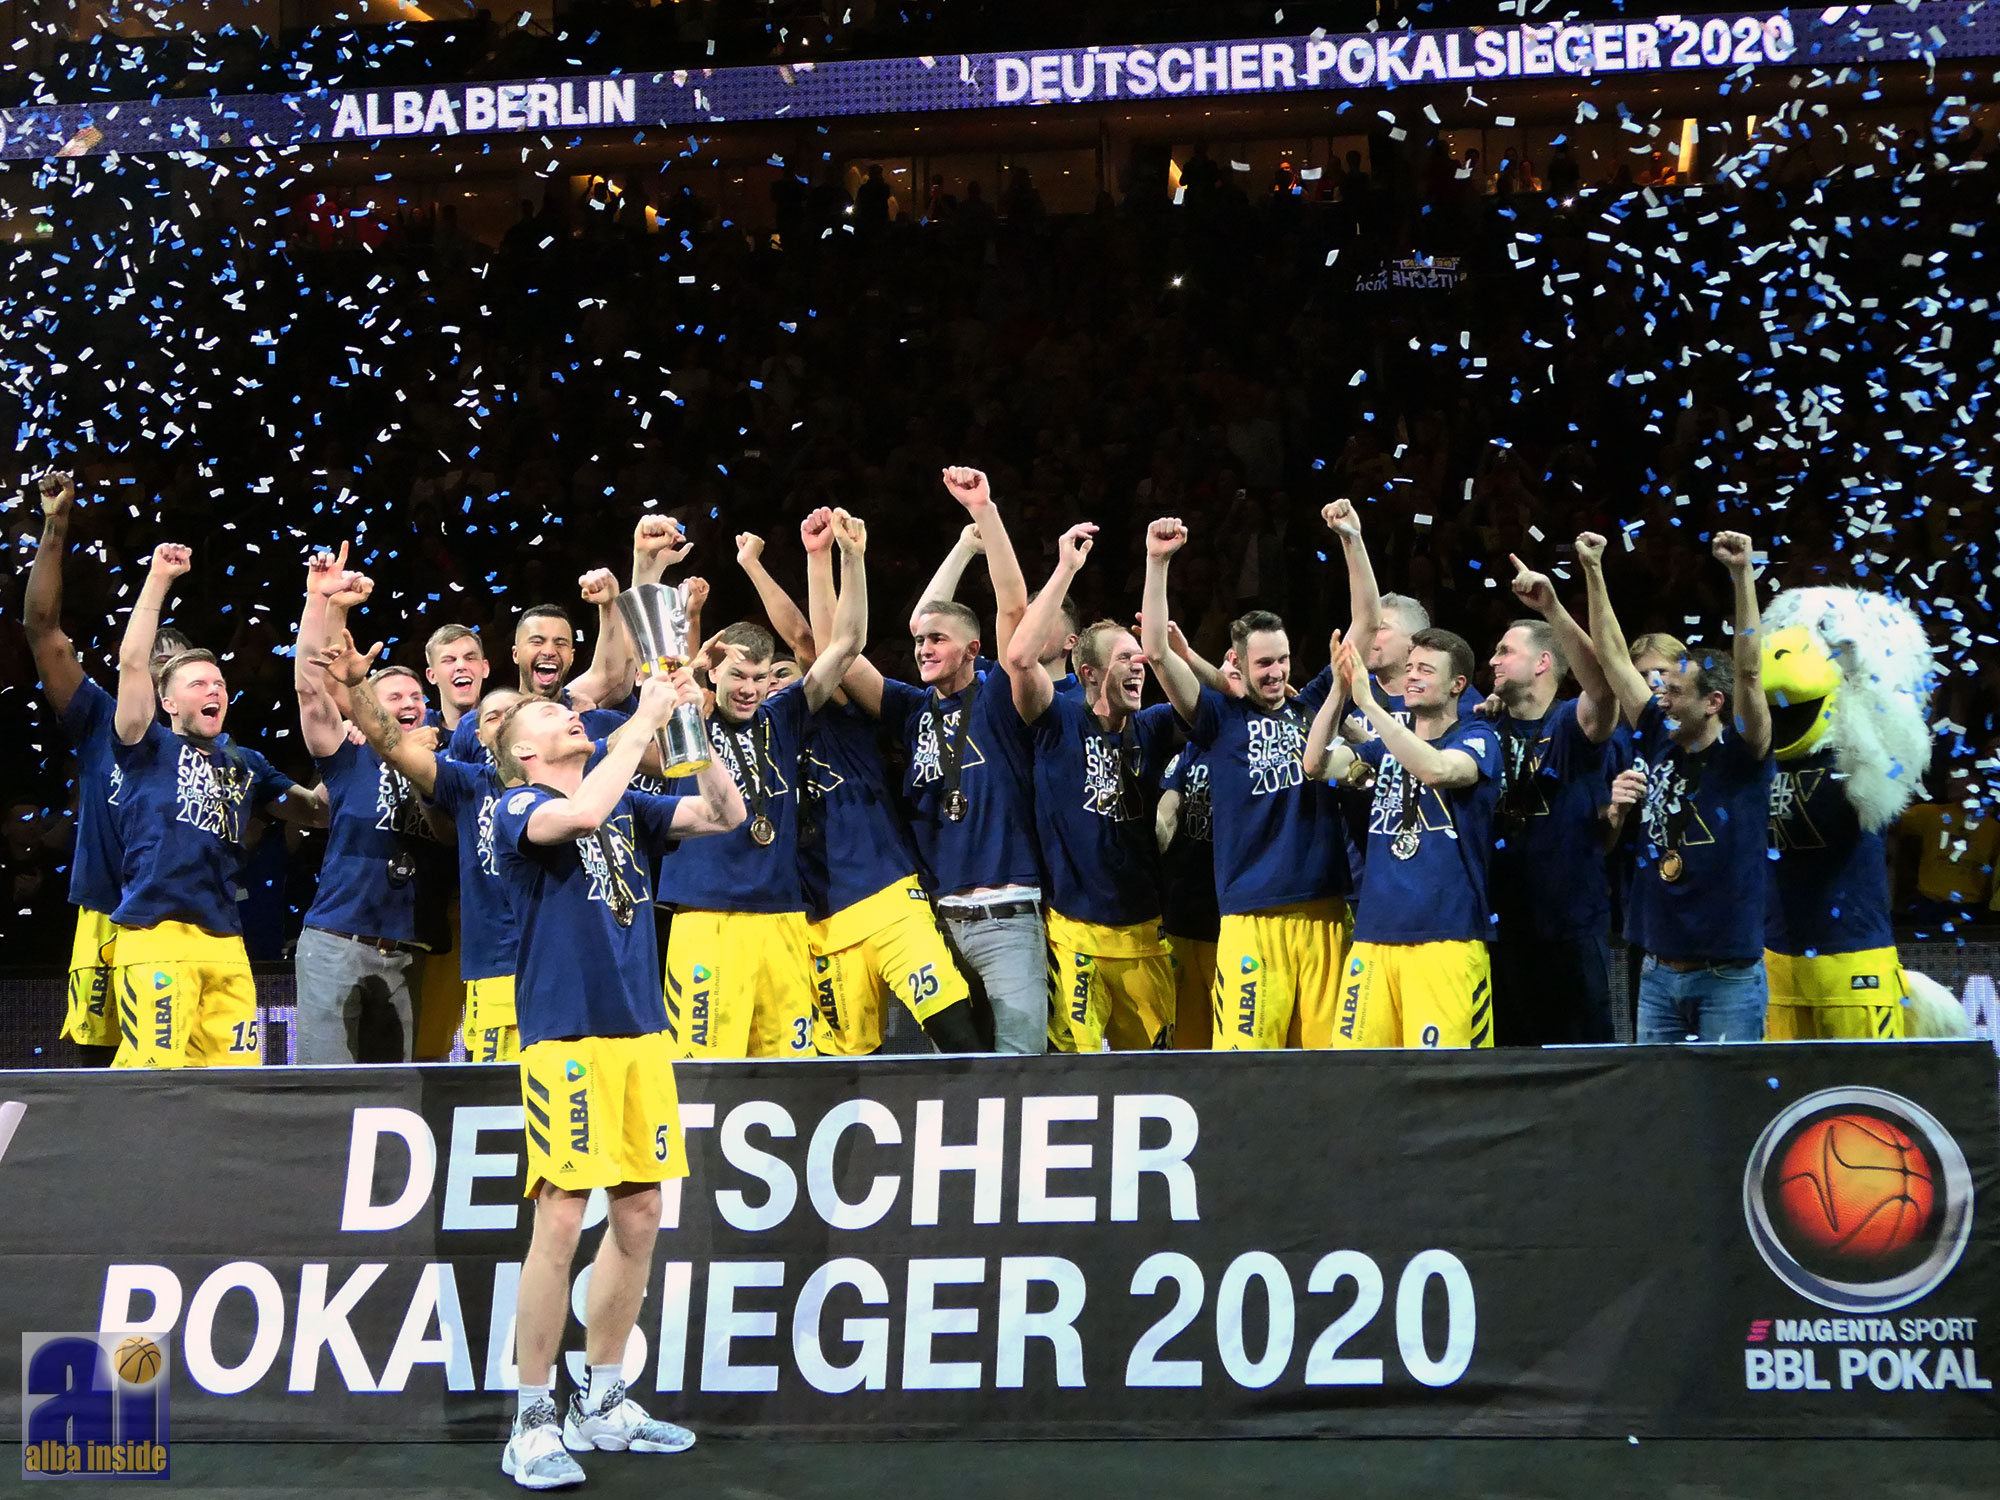 Alba Berlin, EWE Basket Oldenburg, Pokal, easycredit Basketball Bundesliga